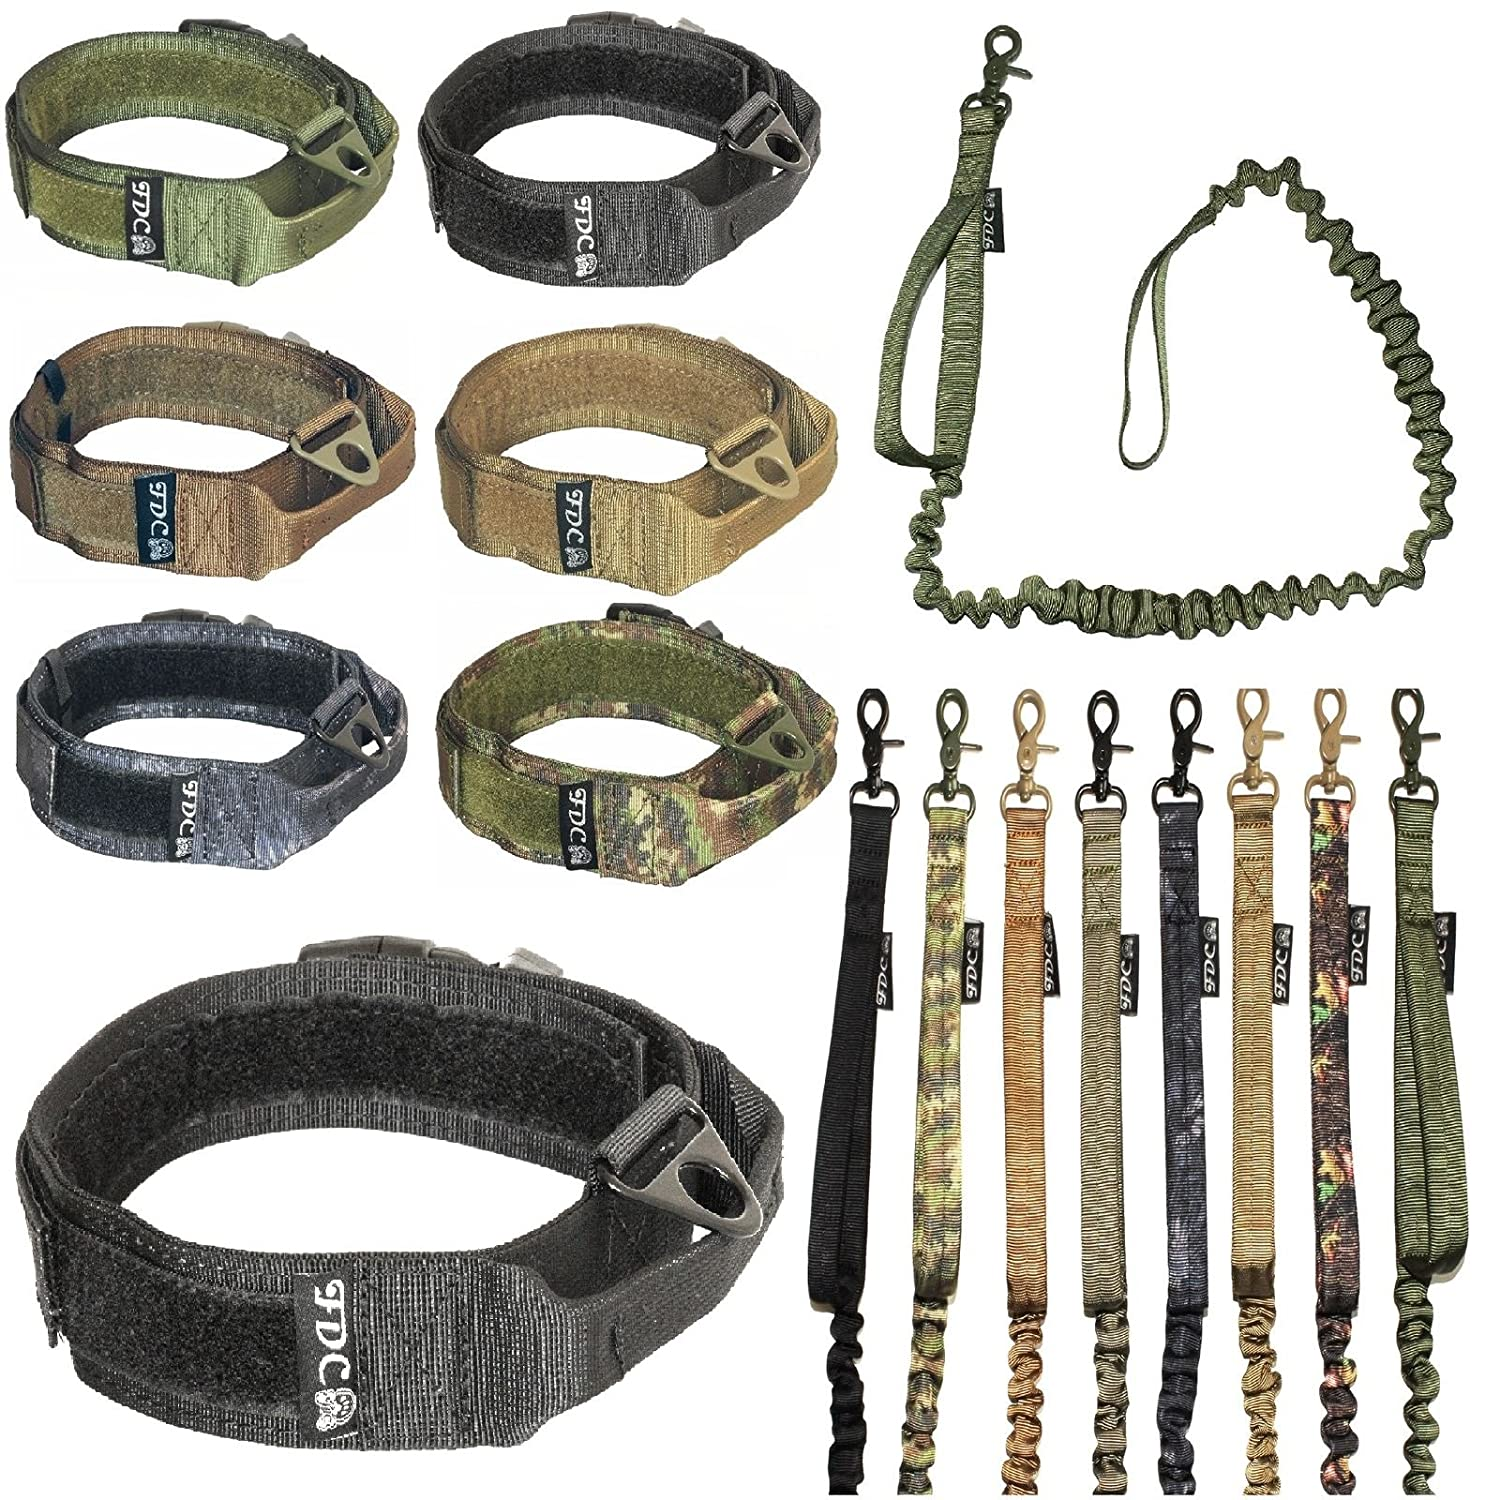 Black M  Neck 11\ Black M  Neck 11\ FDC Dog Tactical Collar with Leash Bungee Handle Heavy Duty Training Military Army Molle Width 1.5in Plastic Buckle Hook & Loop (M  Neck 11  12 , Black)